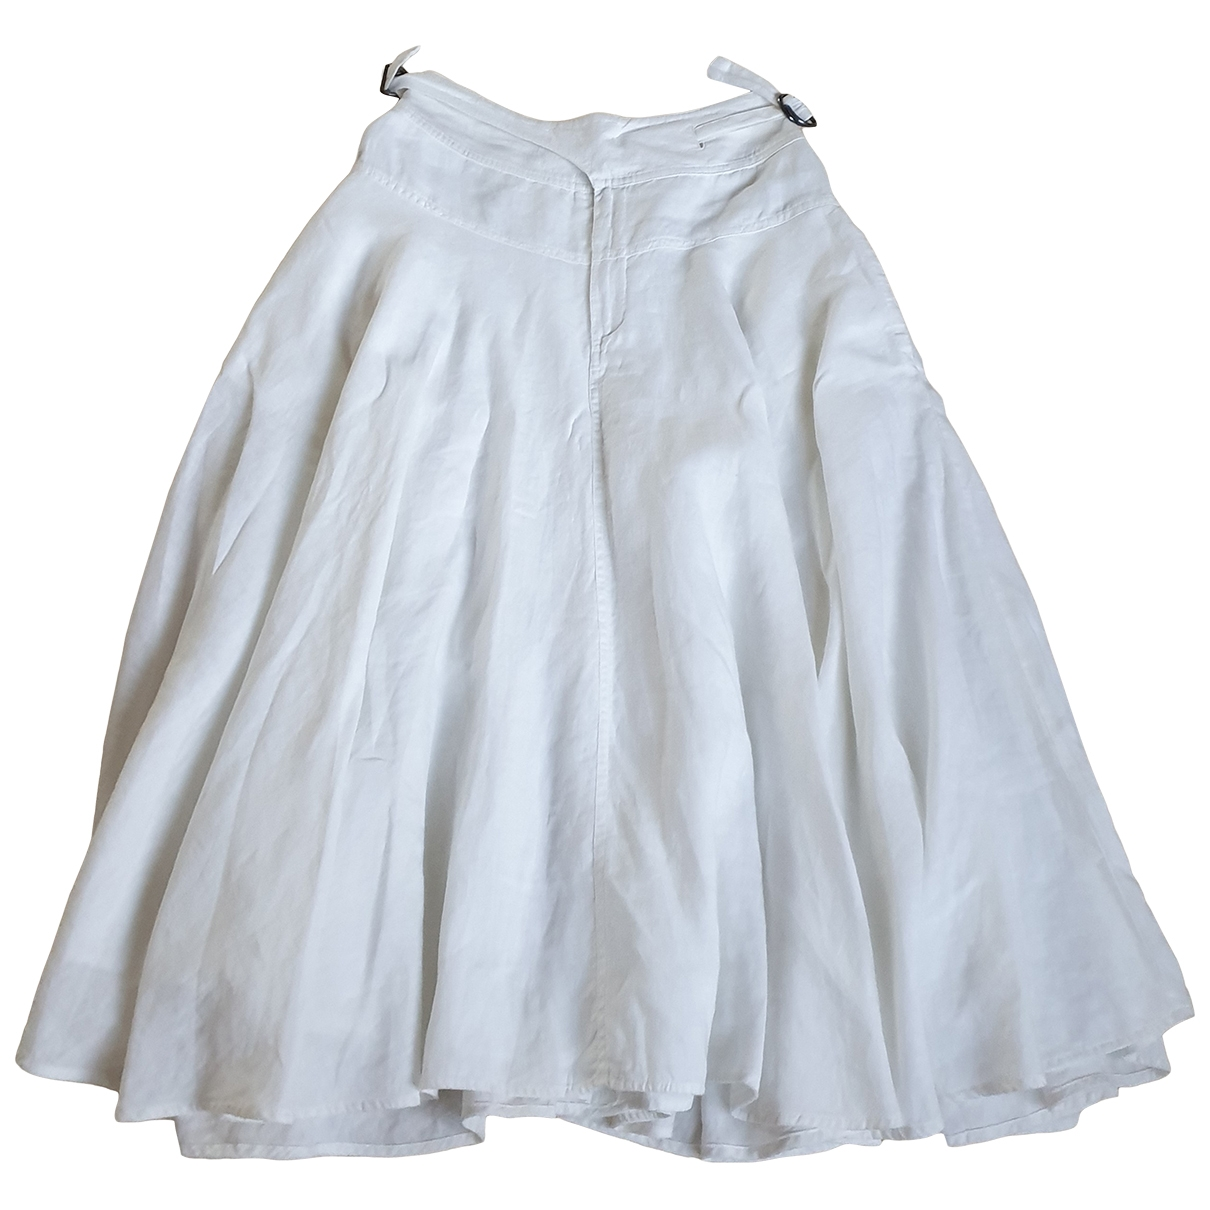 Nicole Farhi \N White Linen skirt for Women S International